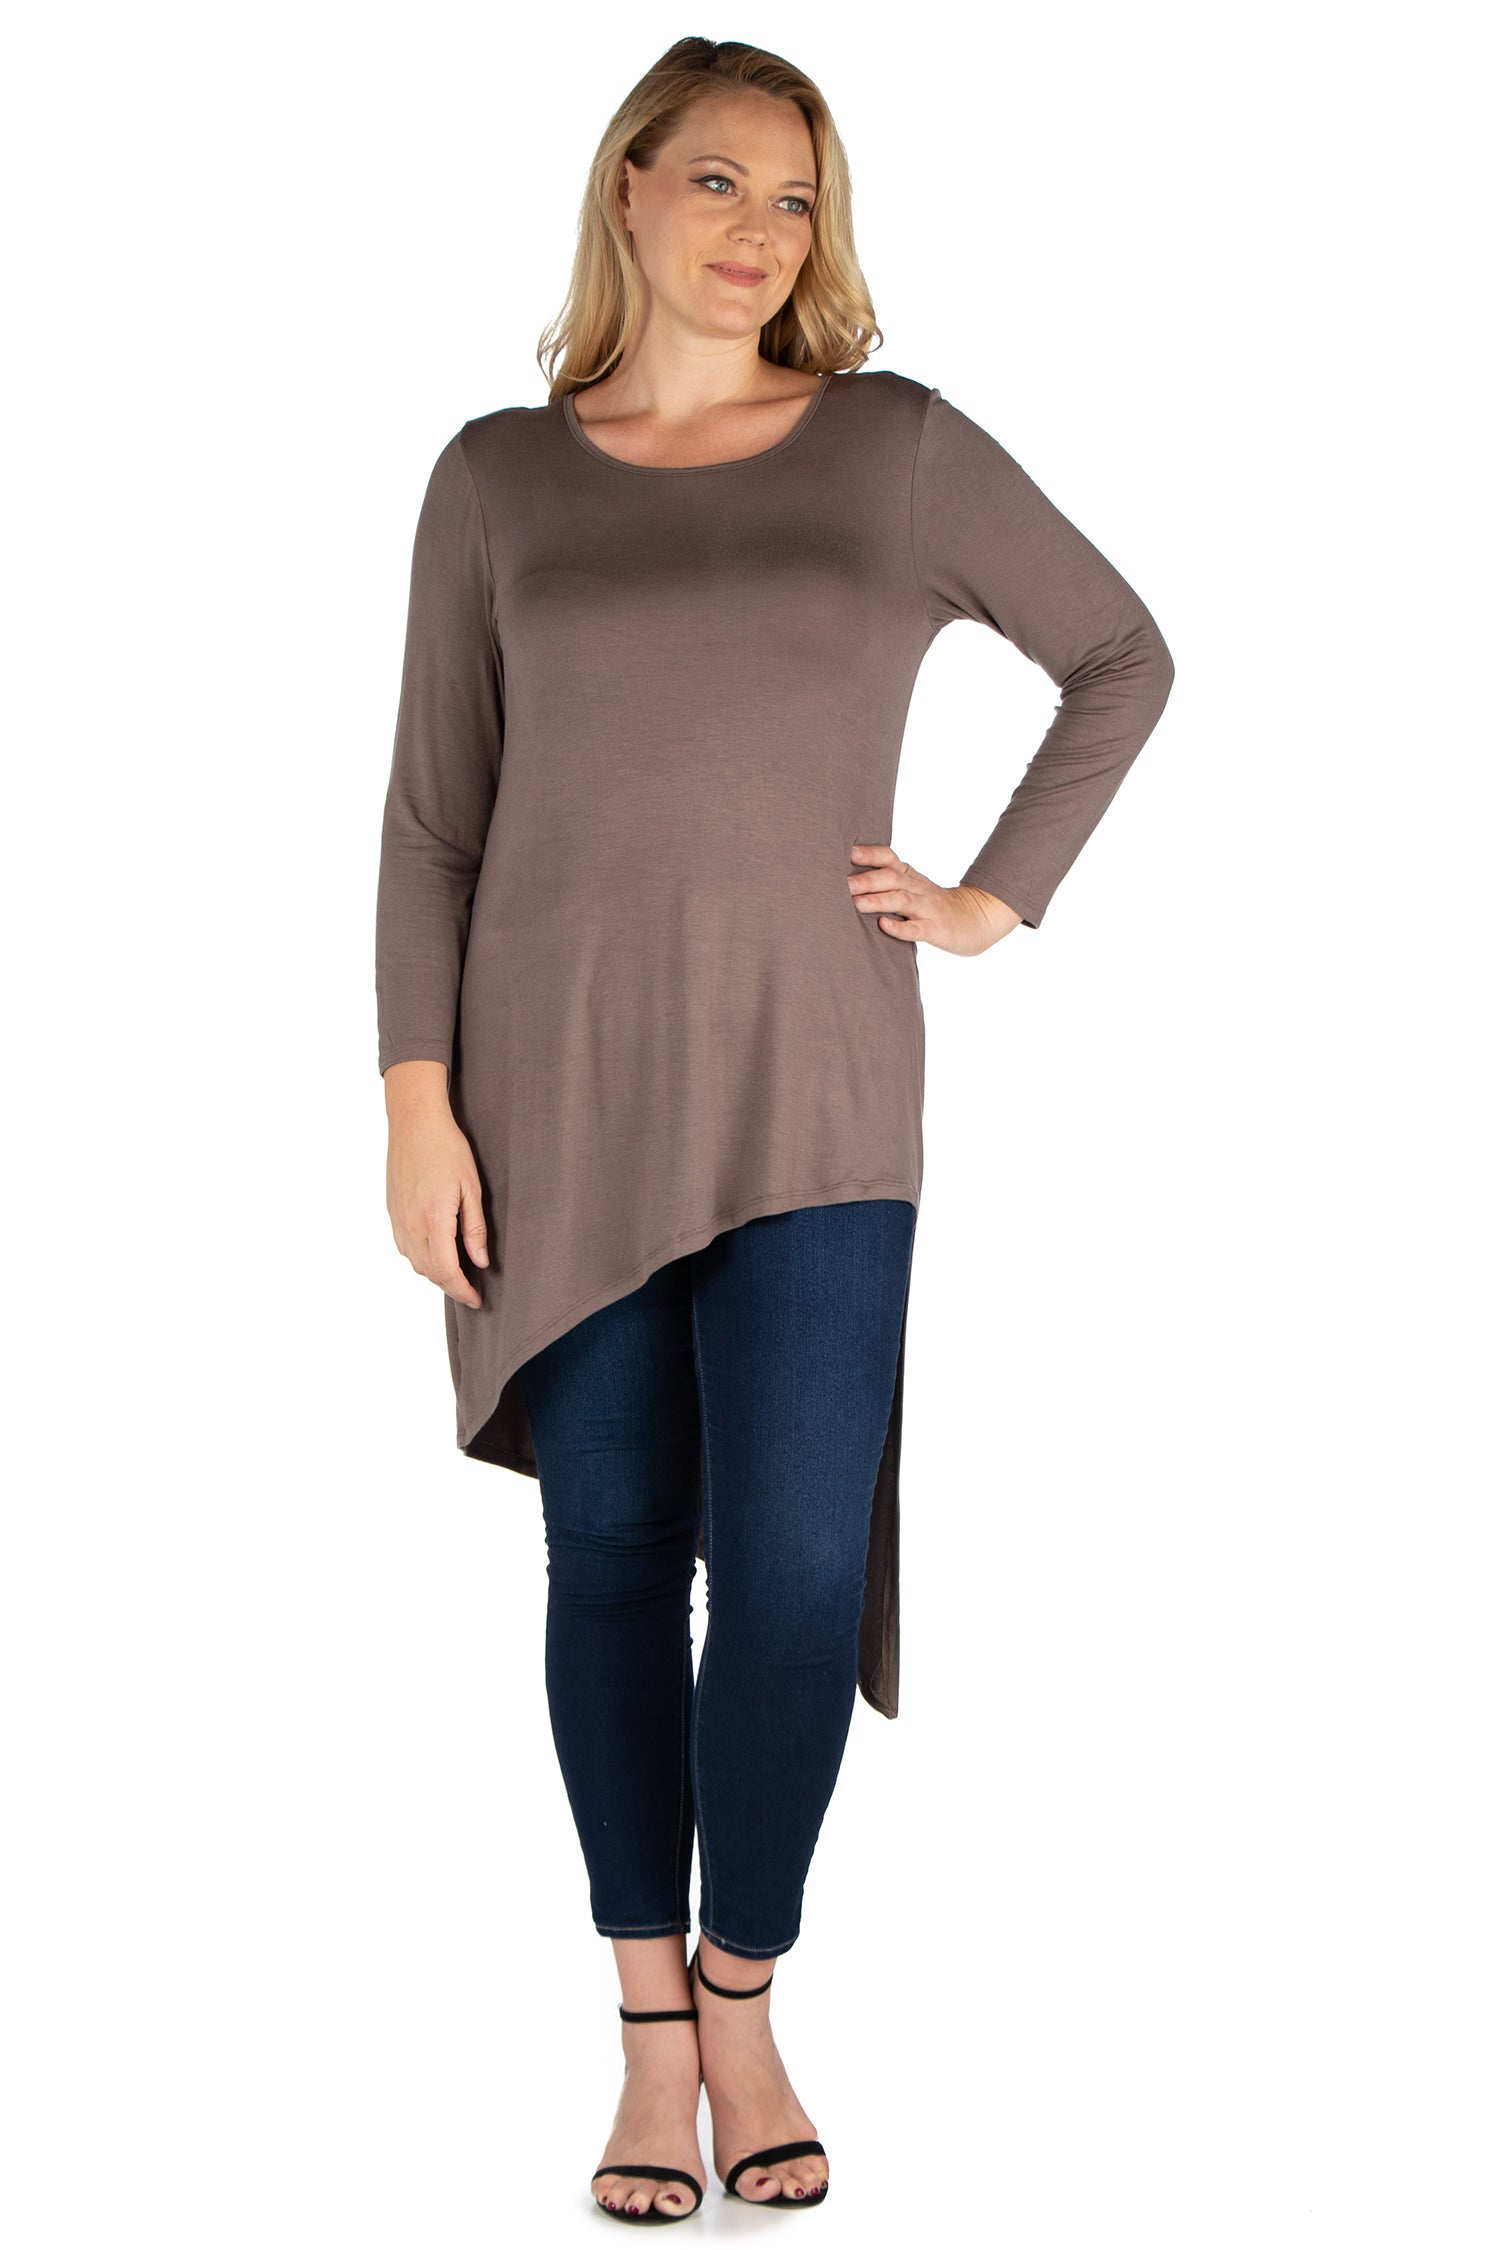 24seven Comfort Apparel Long Sleeve Knee Length Asymmetrical Plus Size Tunic Top-TOPS-24Seven Comfort Apparel-TAUPE-1X-24/7 Comfort Apparel